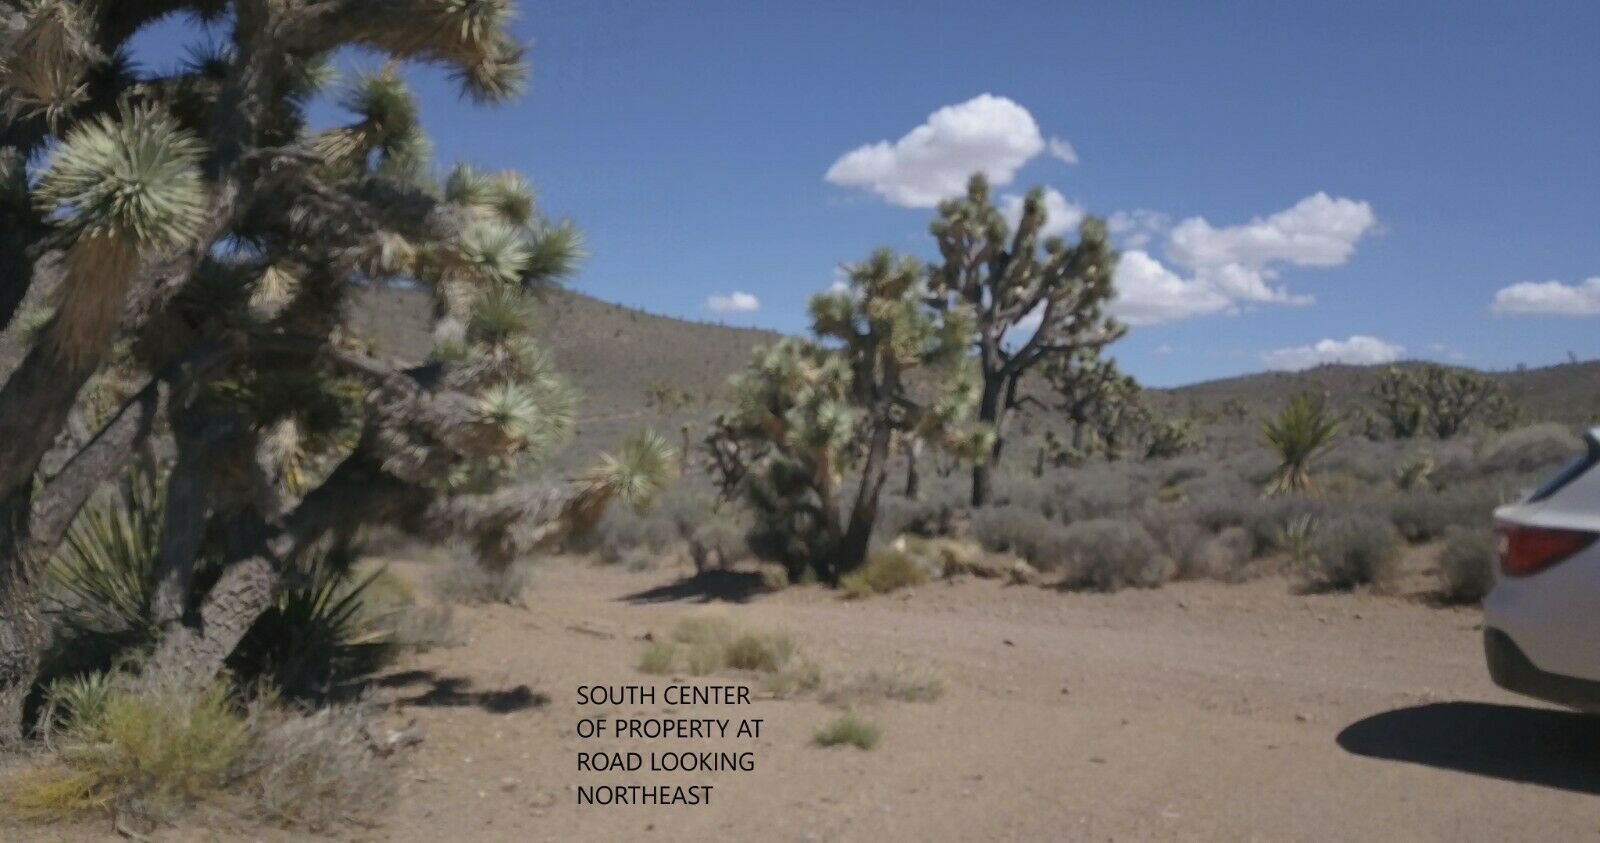 40 Acre Ranch In Mohave County, AZ Grand Canyon Area - Cash  - $14,500.00